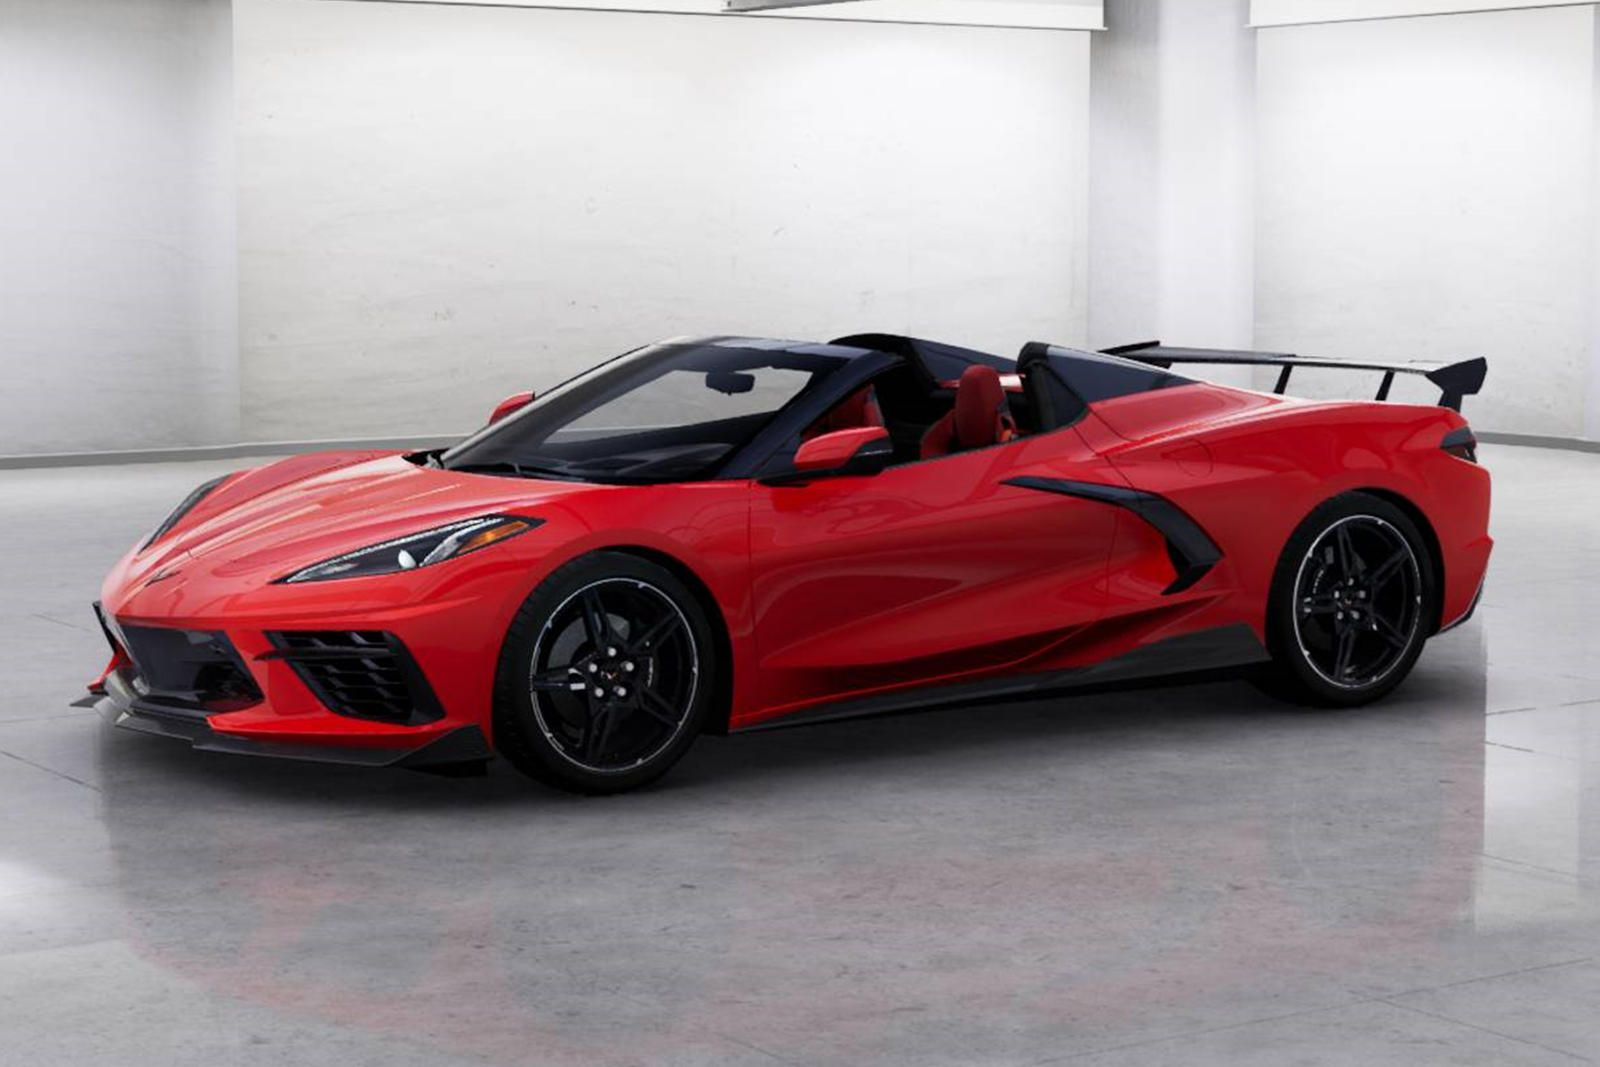 Customize Your Dream 2020 Chevrolet Corvette Convertible Corvette Convertible Chevrolet Corvette Corvette